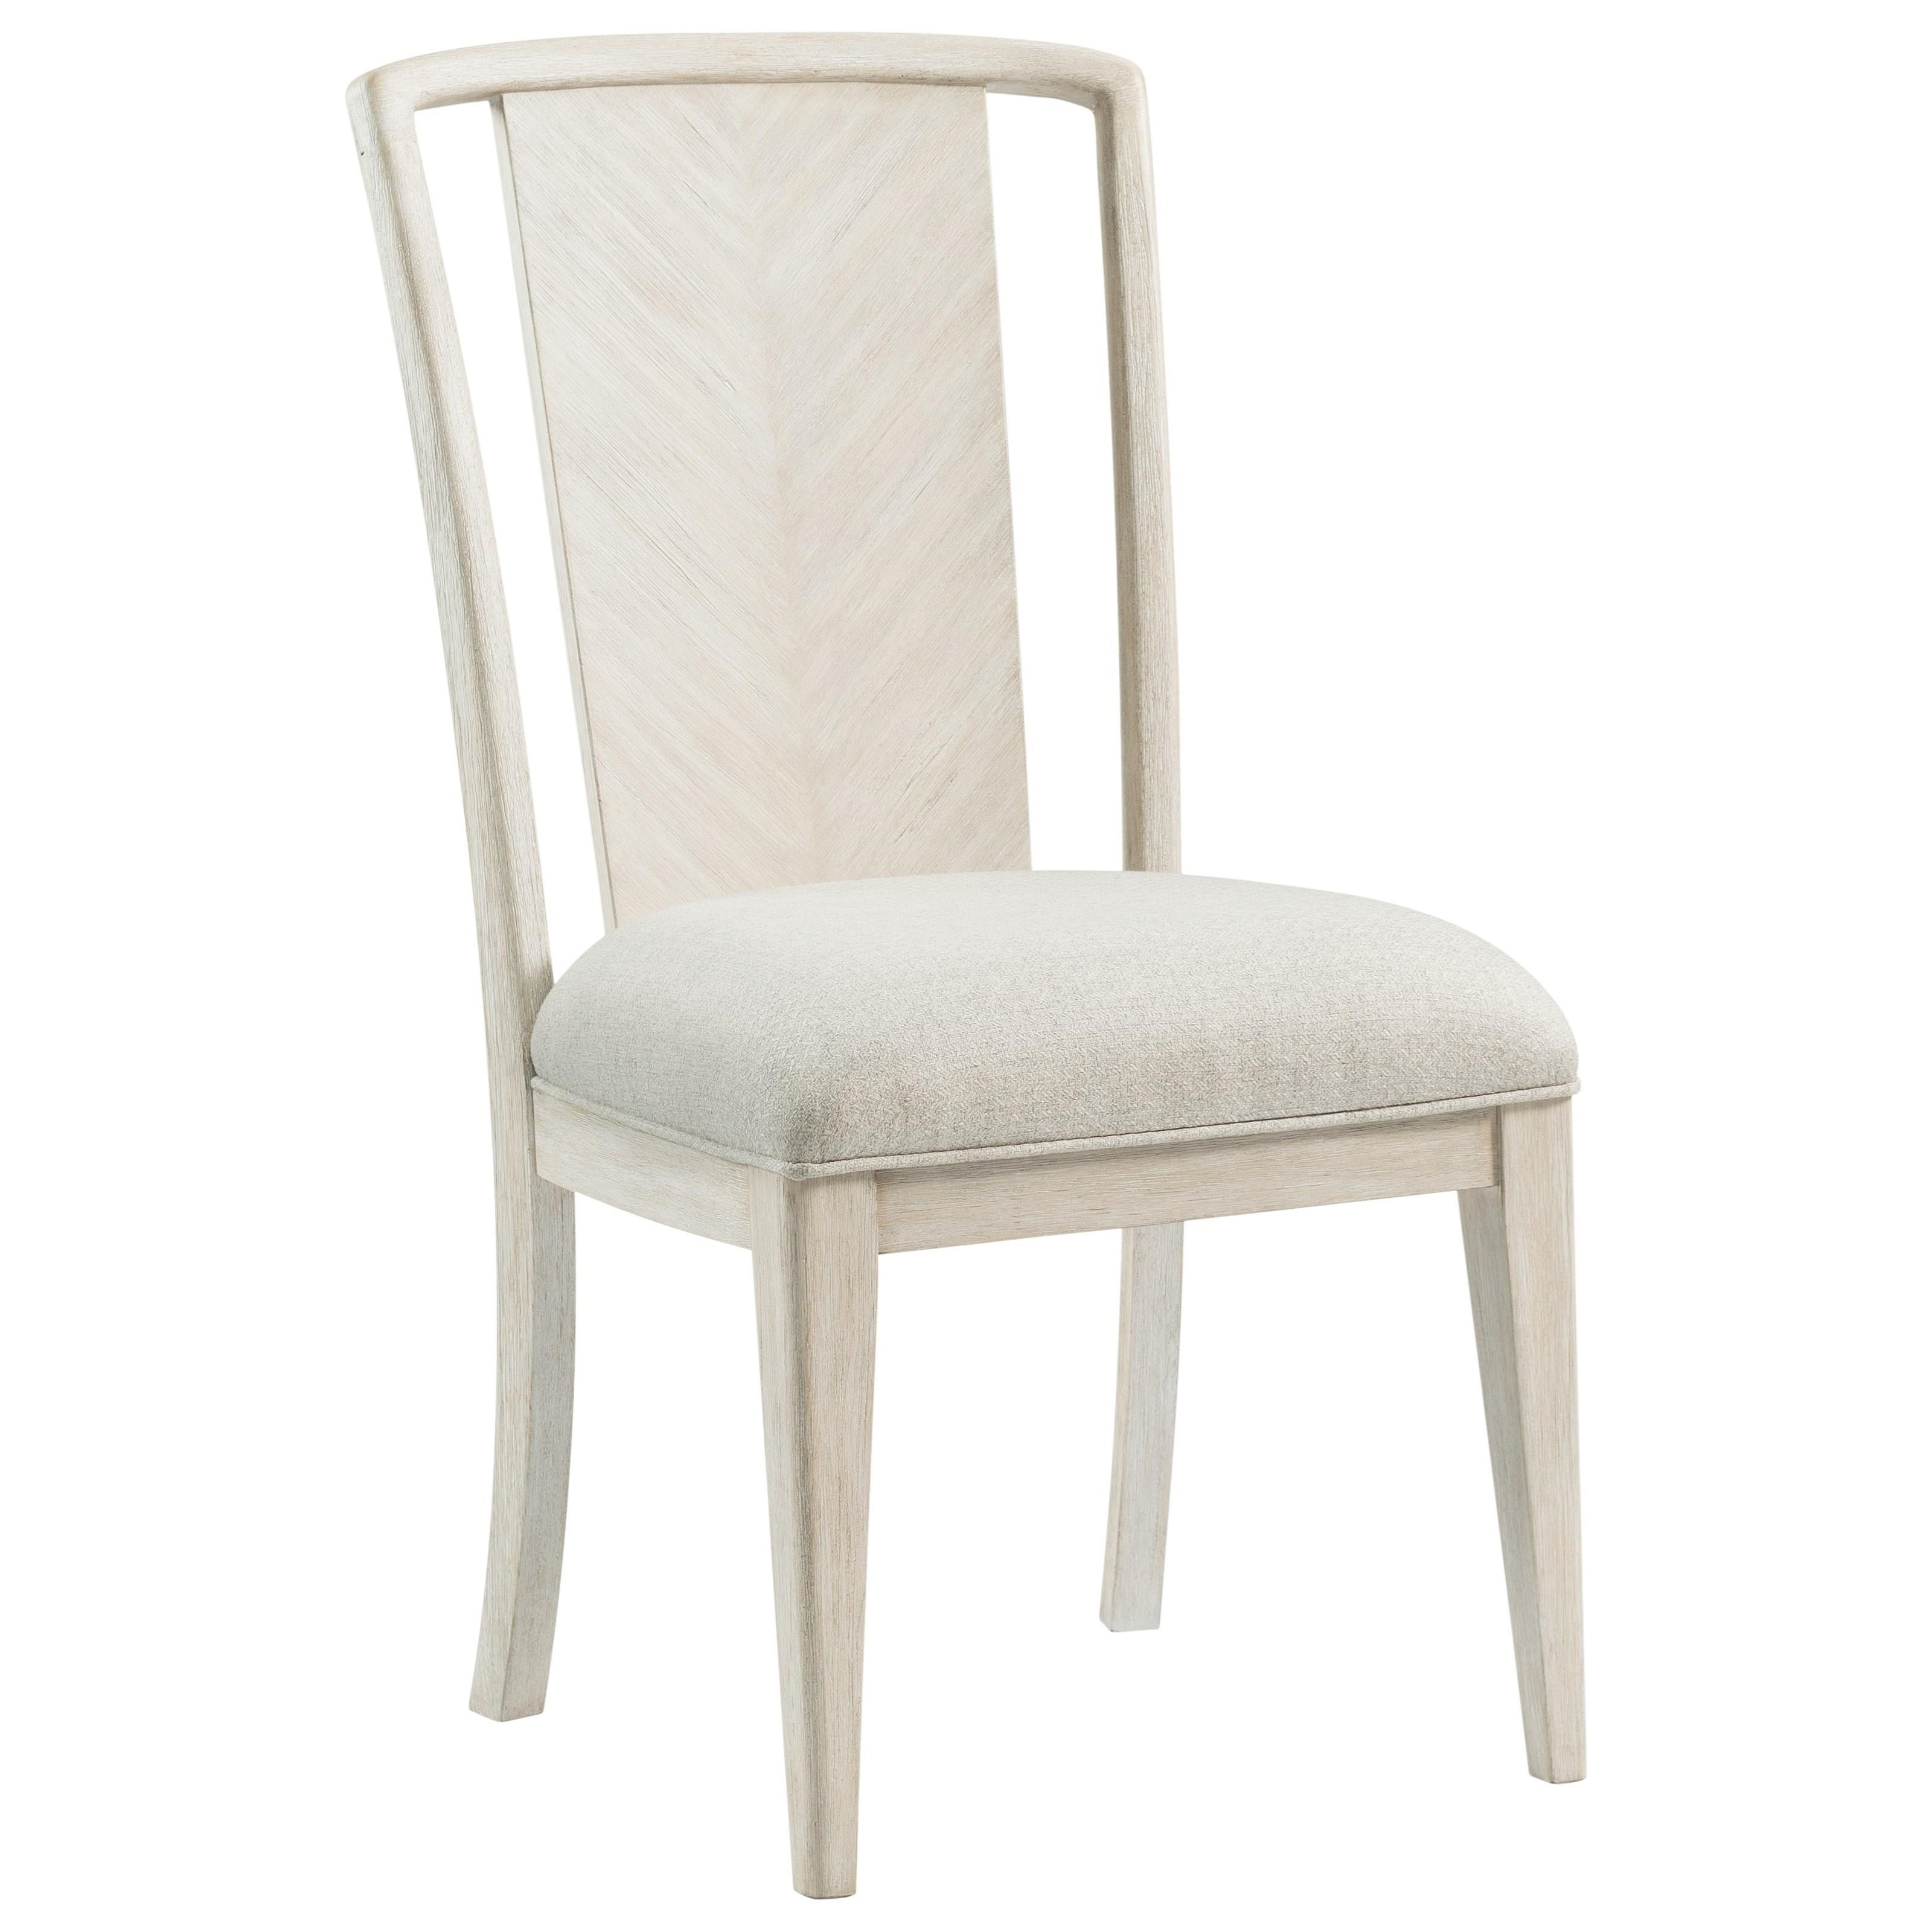 Lilly Upholstered Splat-Back Chair by Riverside Furniture at Baer's Furniture